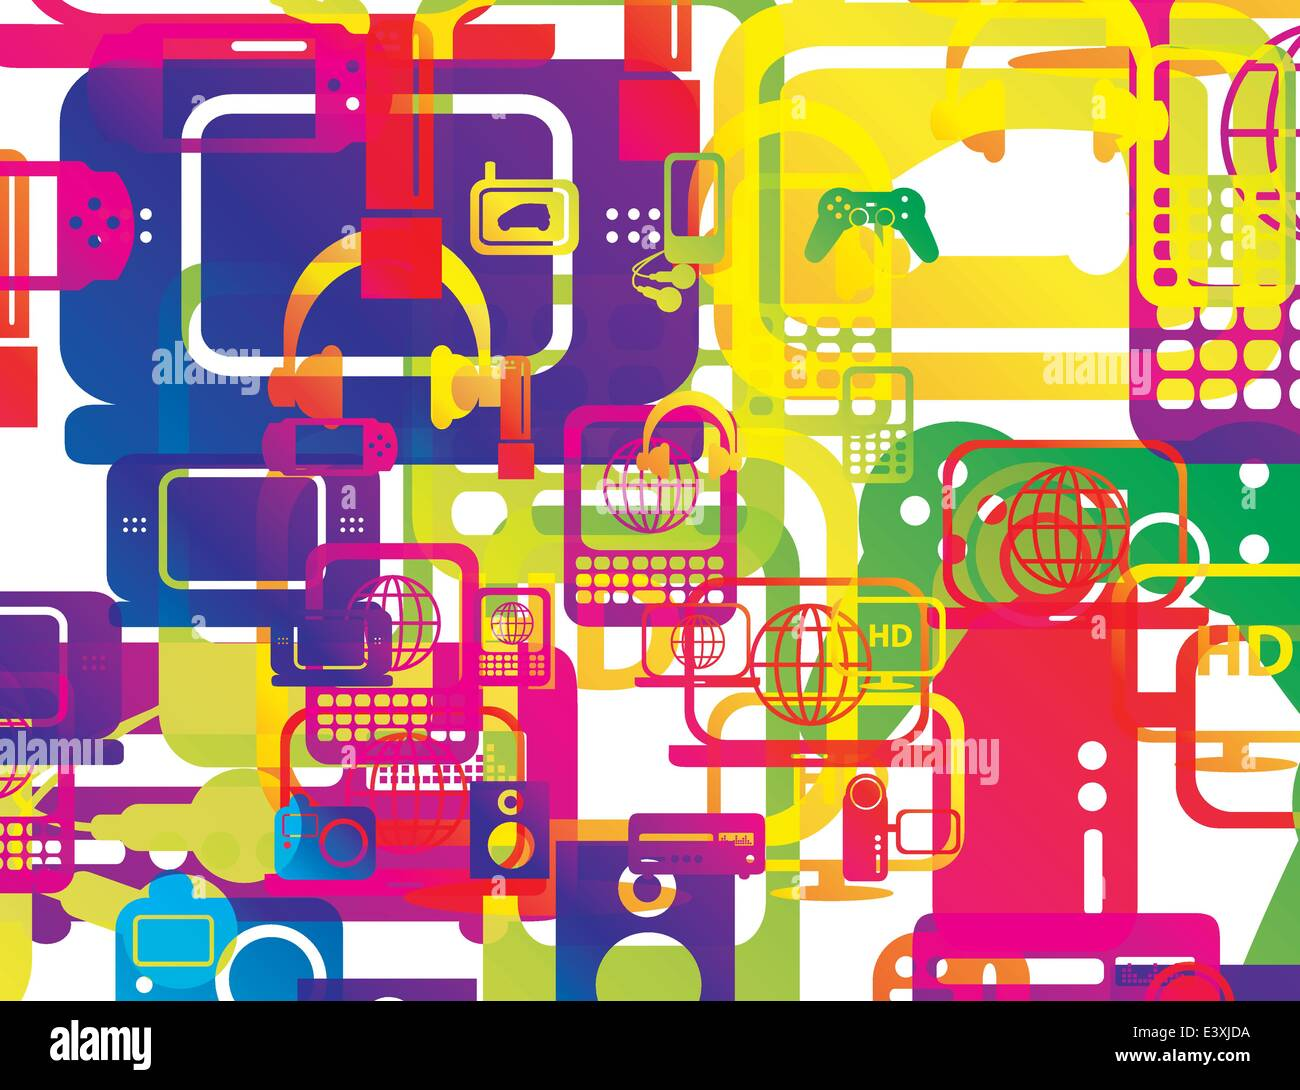 vector illustration of a selection of computer and technology hardware layered and multiplied to create an abstract - Stock Image